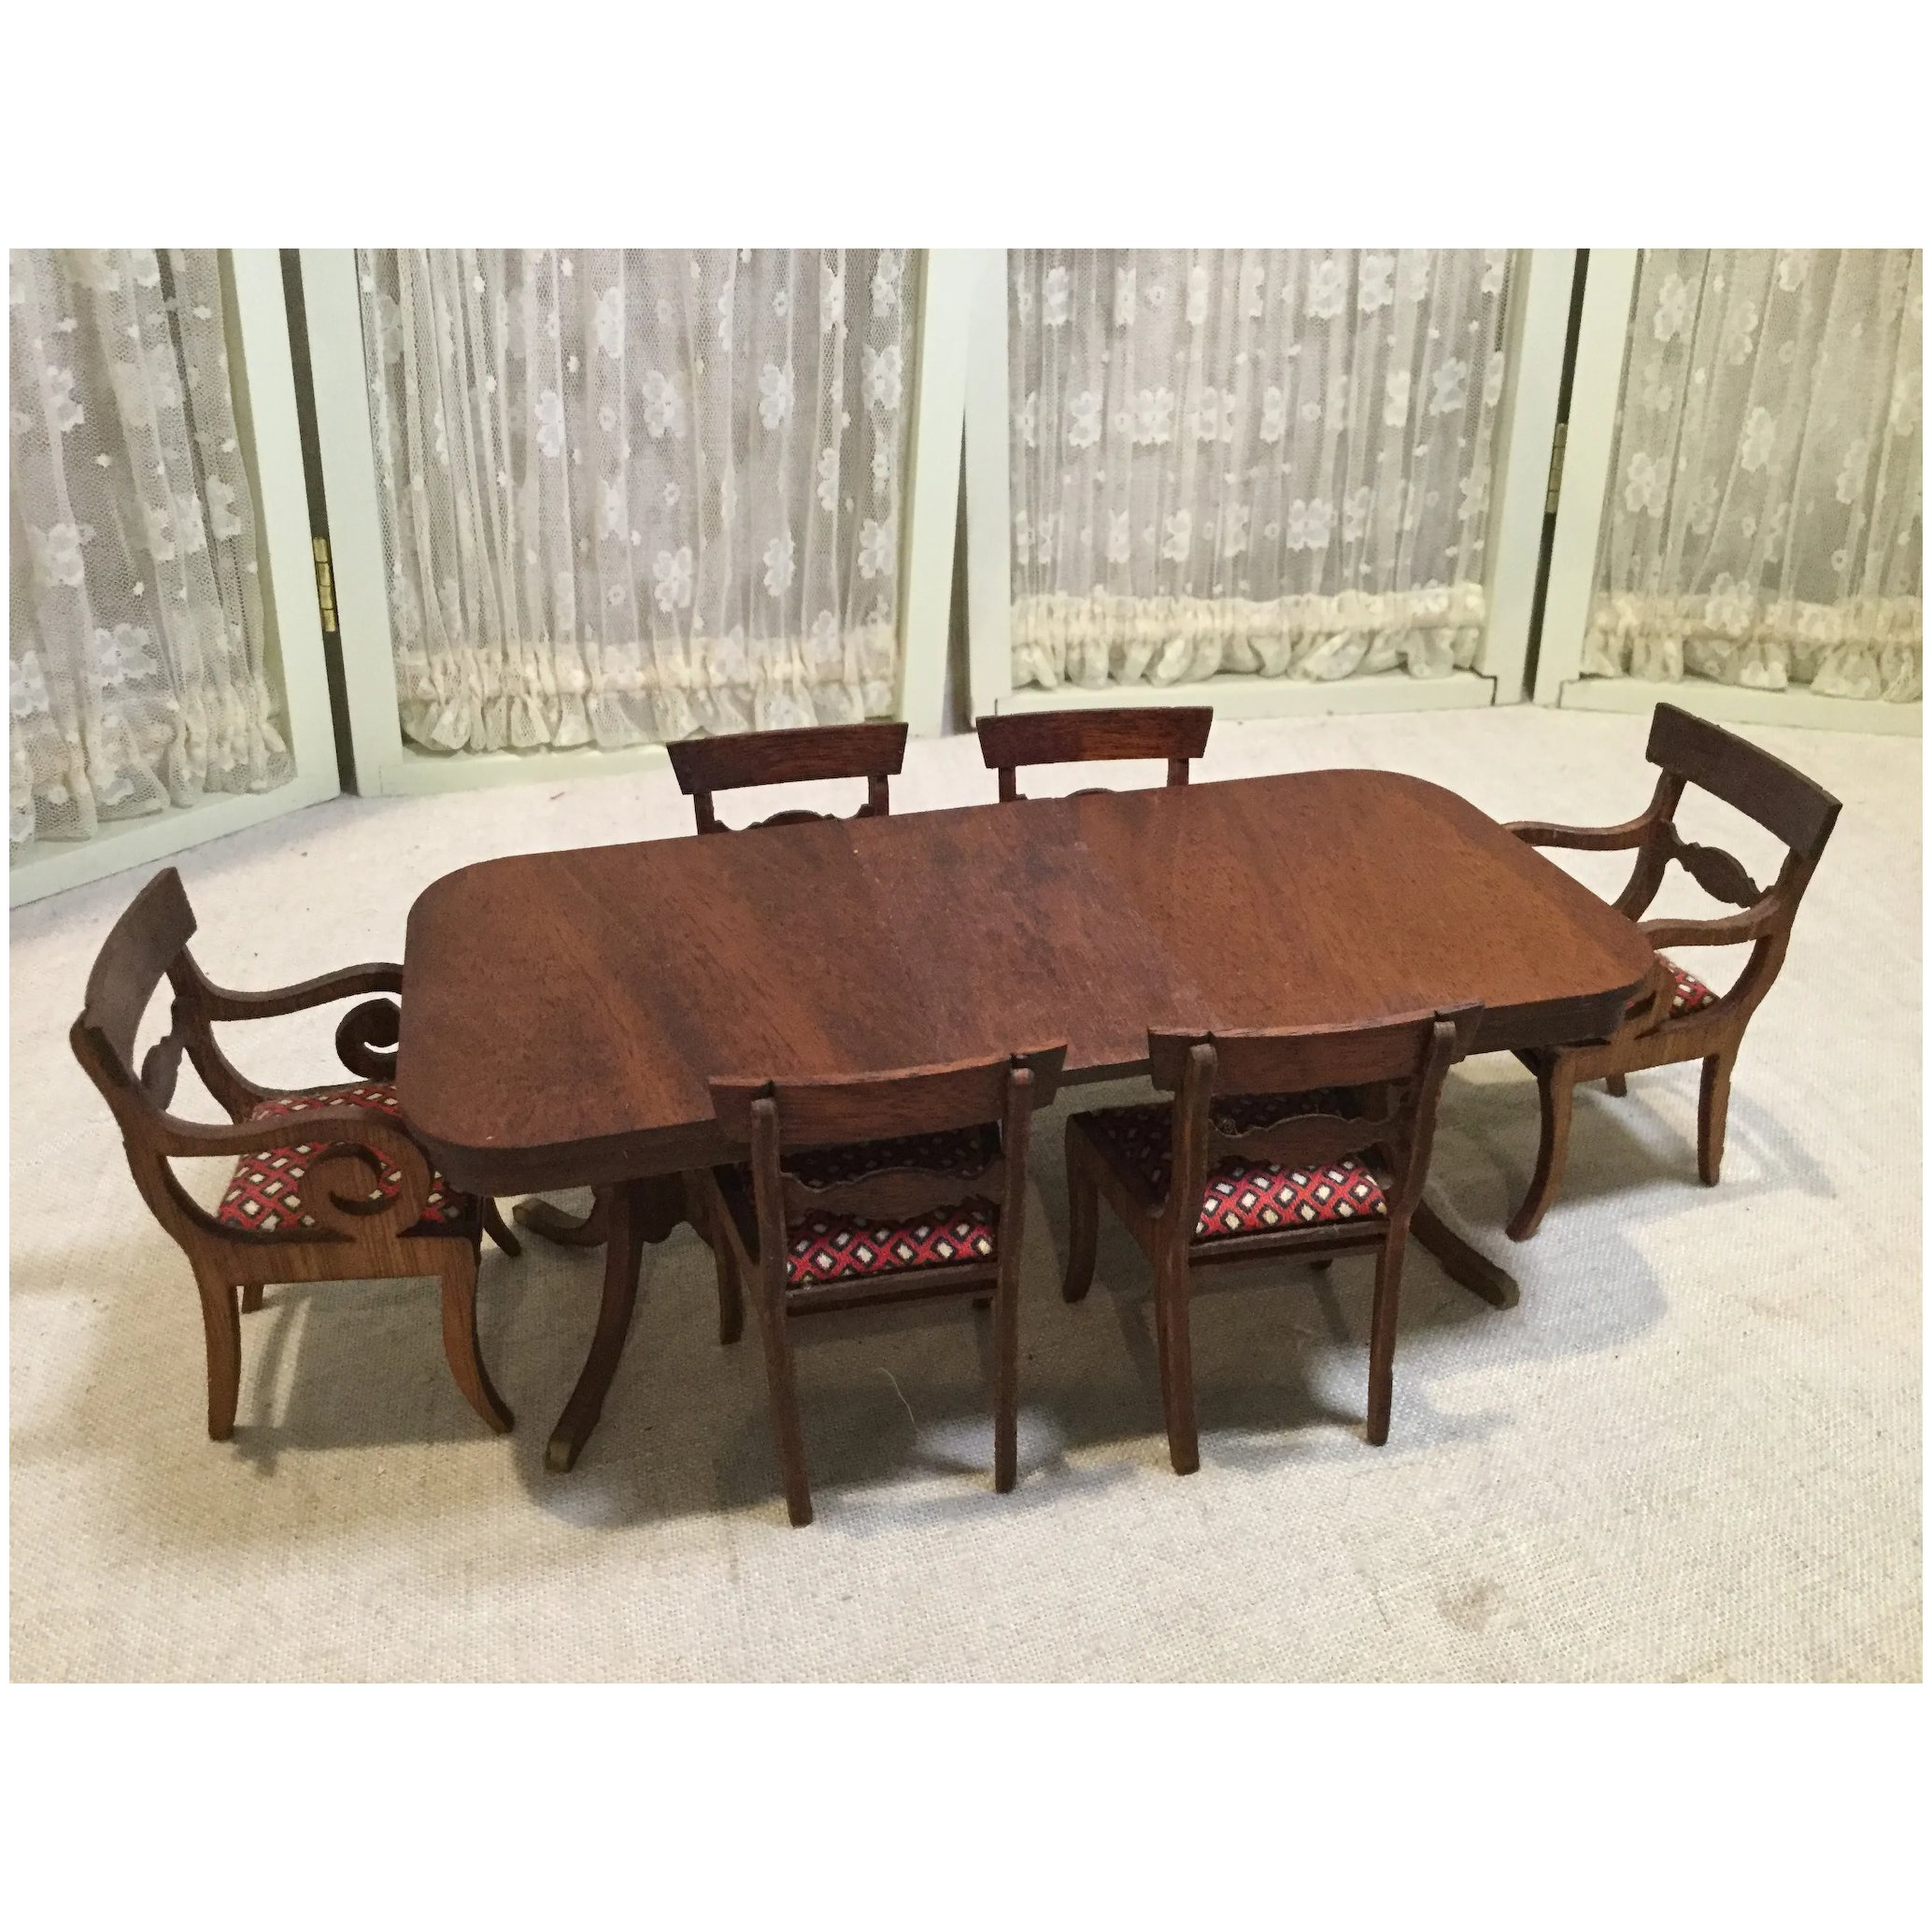 Vintage Duncan Phyfe Dining Table Set 6 Chairs Leaf Timeless Pieces Antiques Ruby Lane